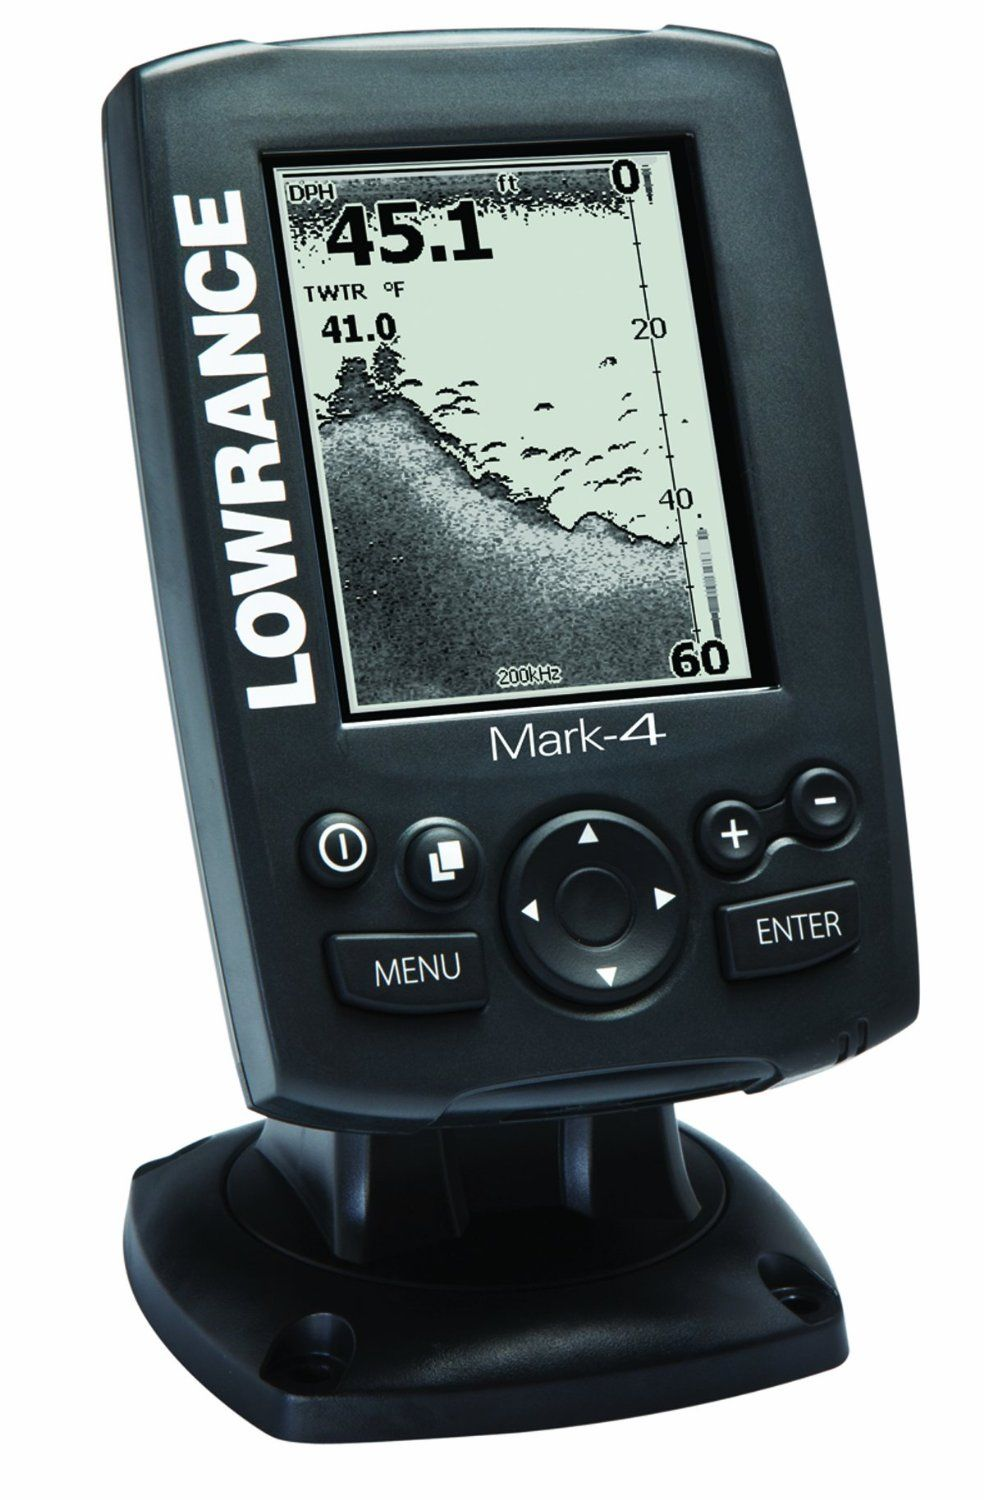 lowrance mark 4 combo base fishfinder and